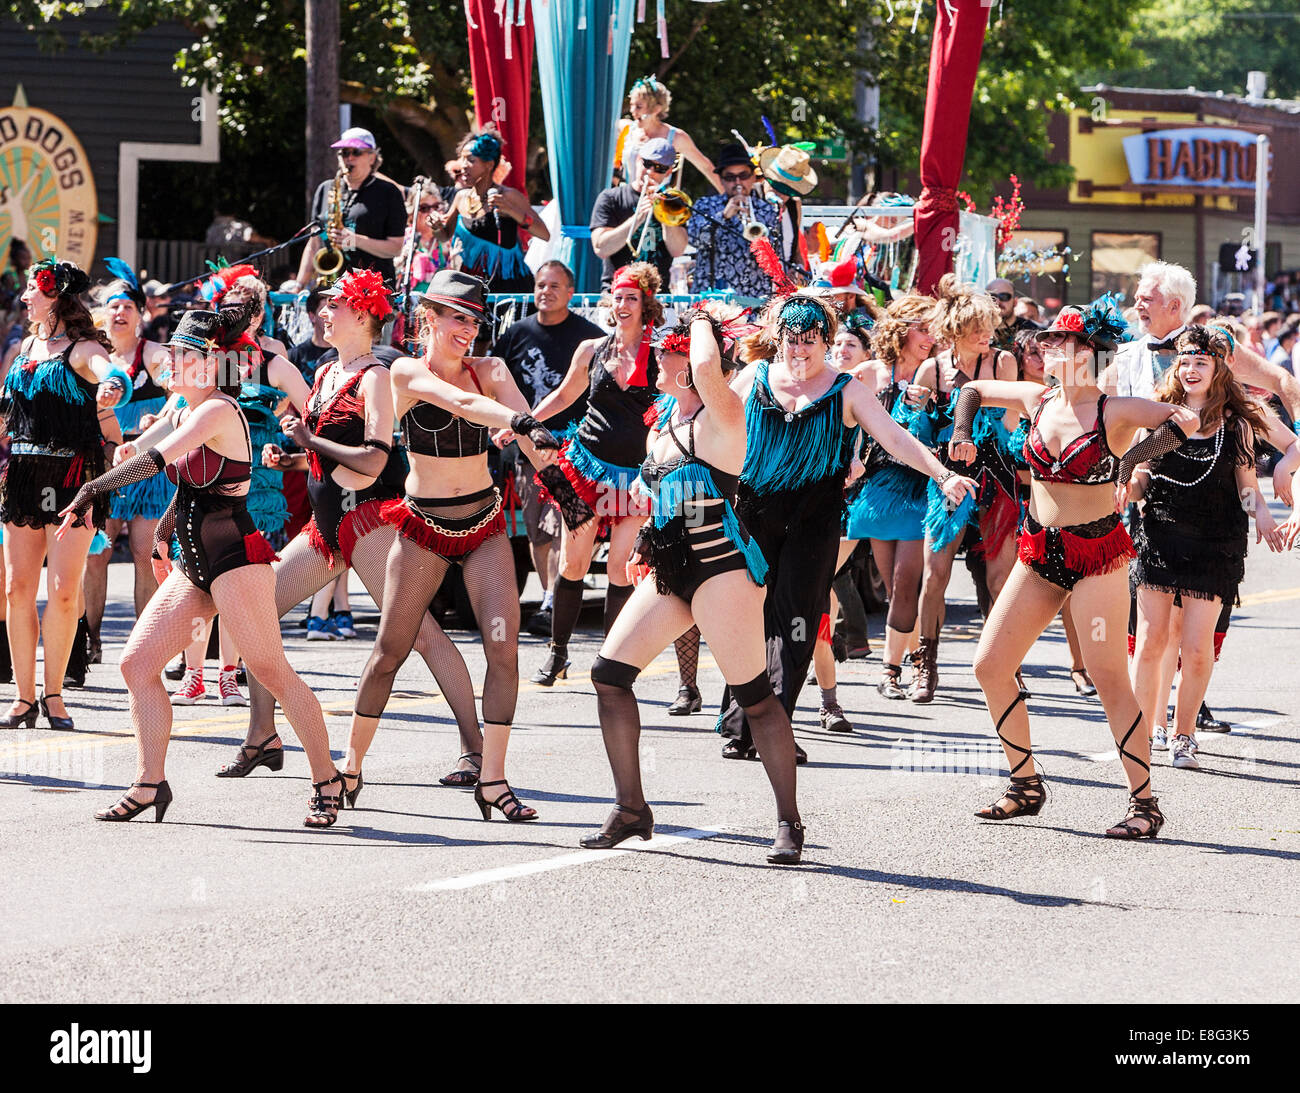 Dance Troupe Performs In Parade - Stock Image